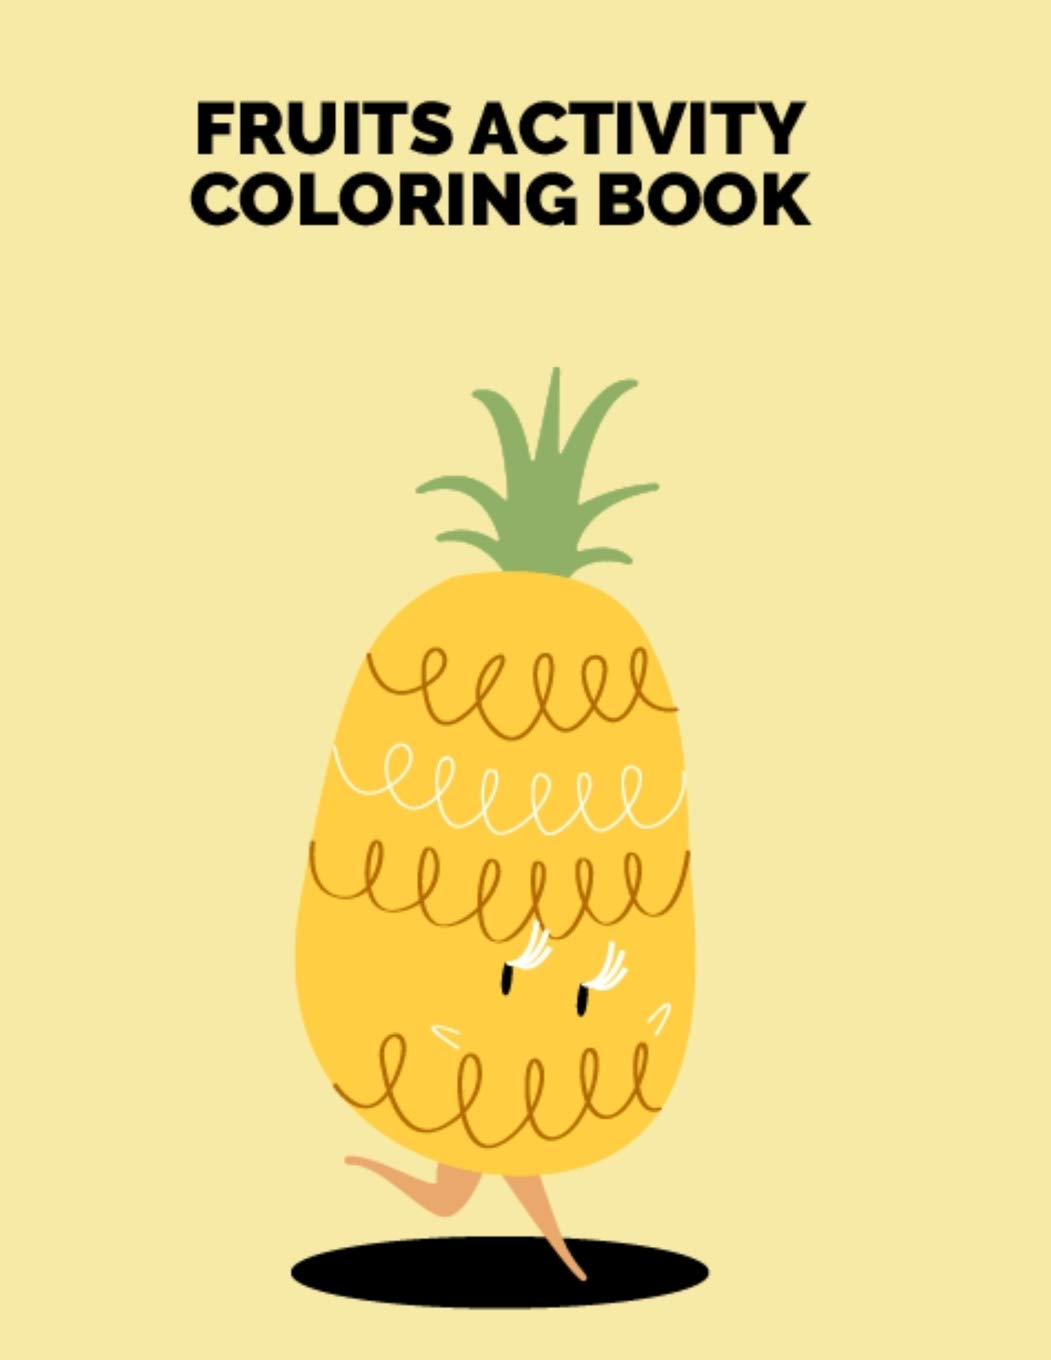 Fruits Activity Coloring Book Easy Design Pictures Printable Fruits Coloring Pages For Kids And Toddlers Fruits And Vegetables Coloring Sheets For Kids Coloring Practice And Relaxation Publishing Bright Coloring Books 9781658941204